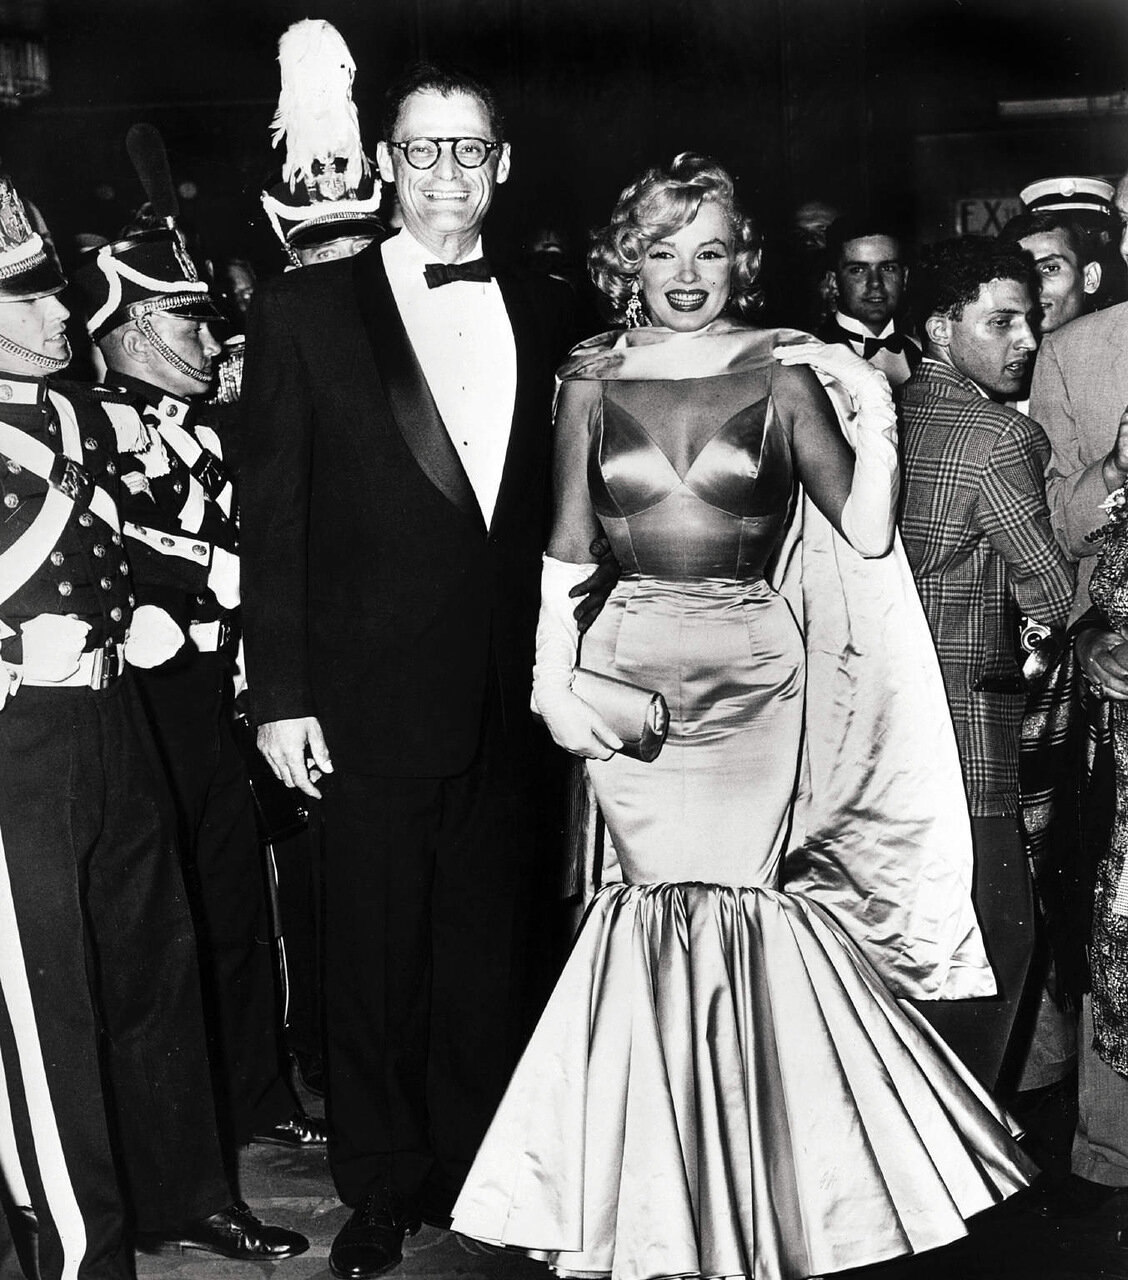 00/00/0000. File pictures of Arthur Miller and Marilyn Monroe